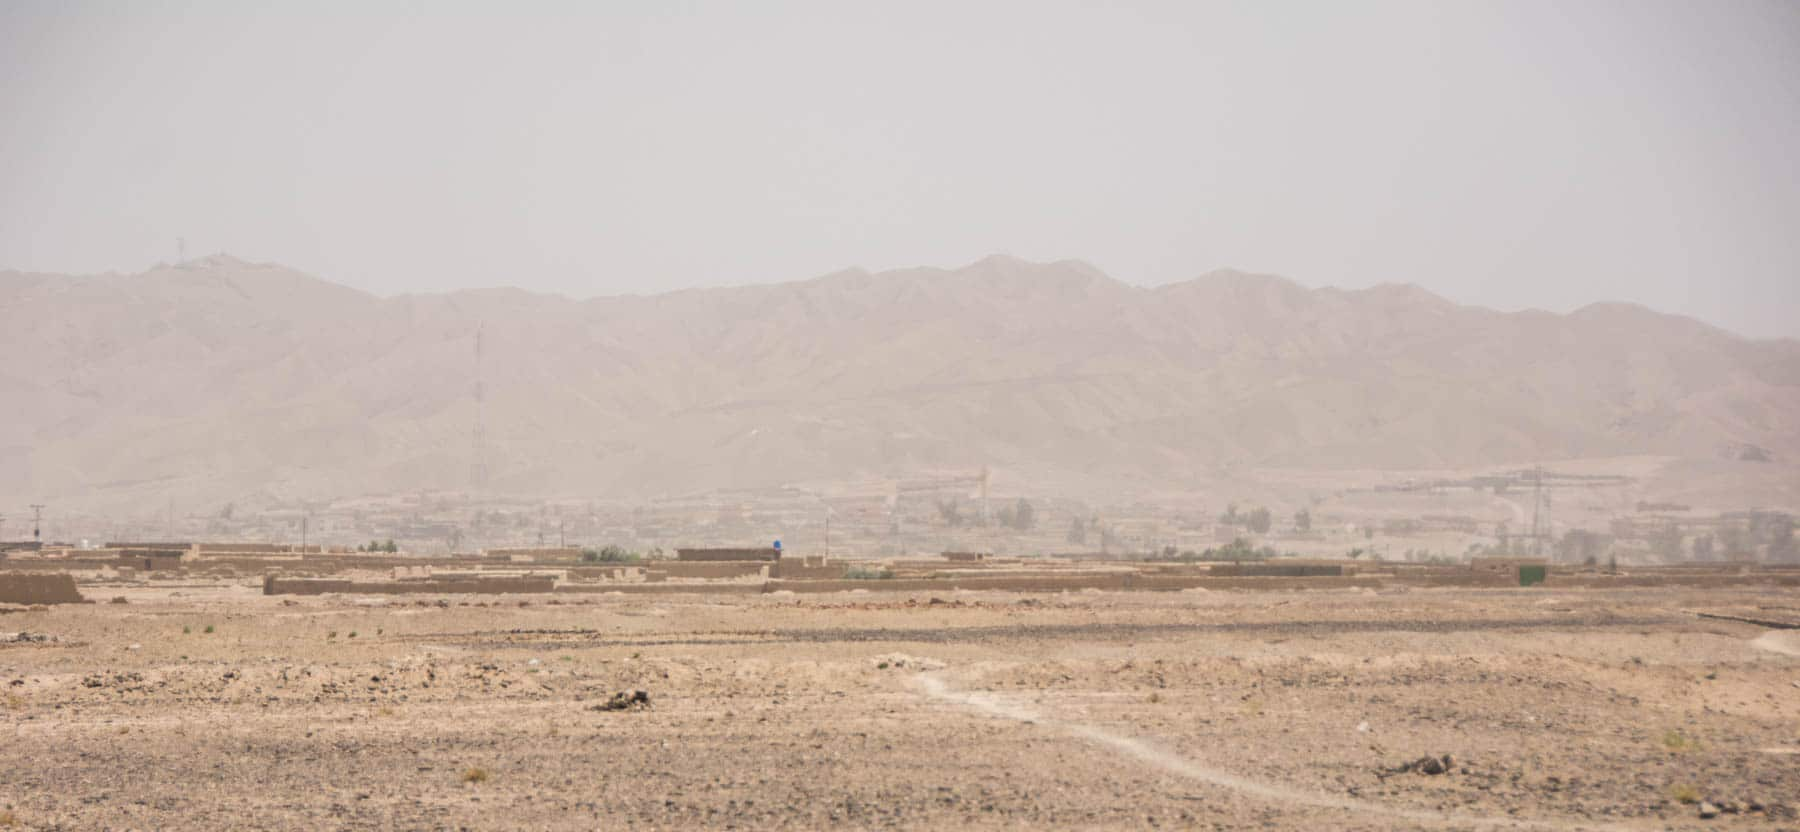 Getting close to the border with Afghanistan in Pakistan at Nushki